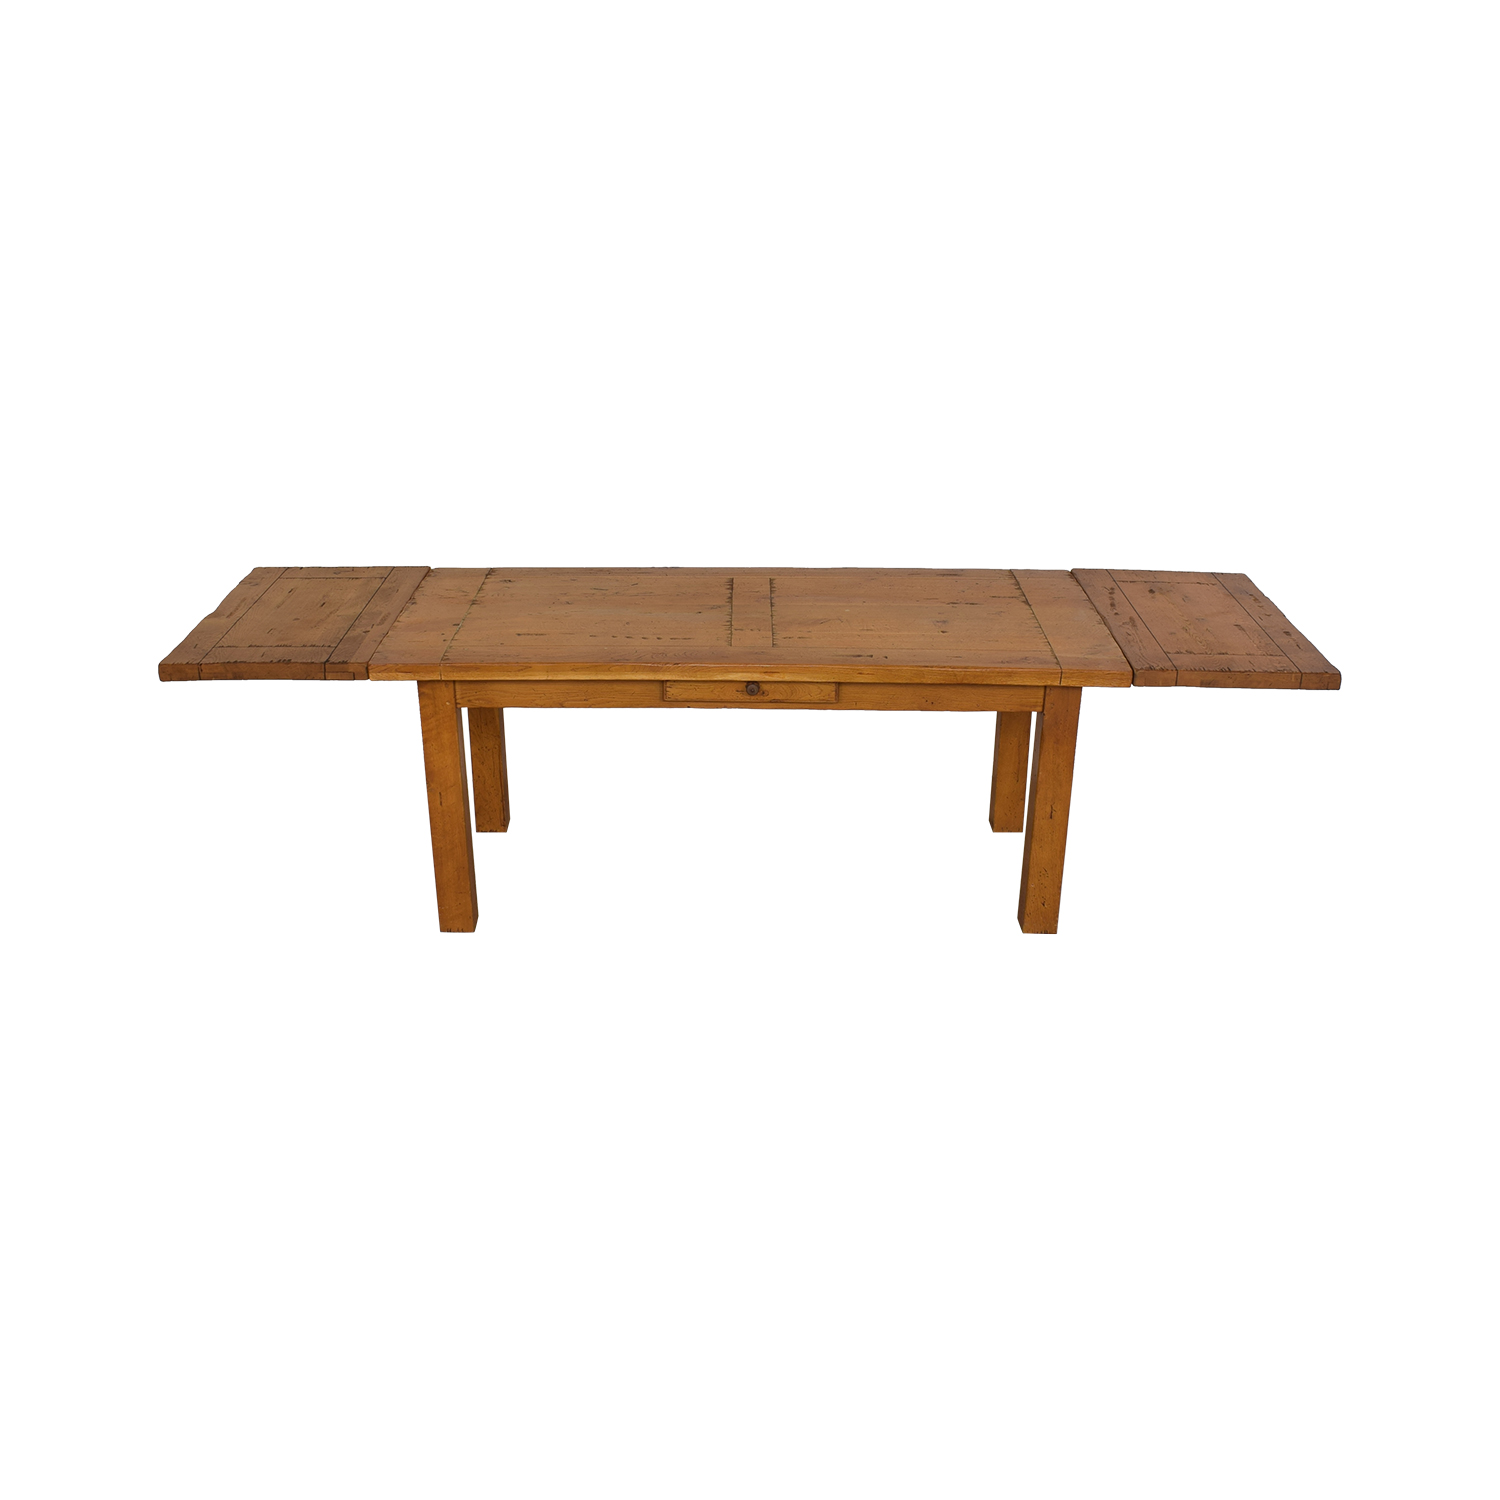 Crate & Barrel Crate & Barrel French Farm Dining Table coupon